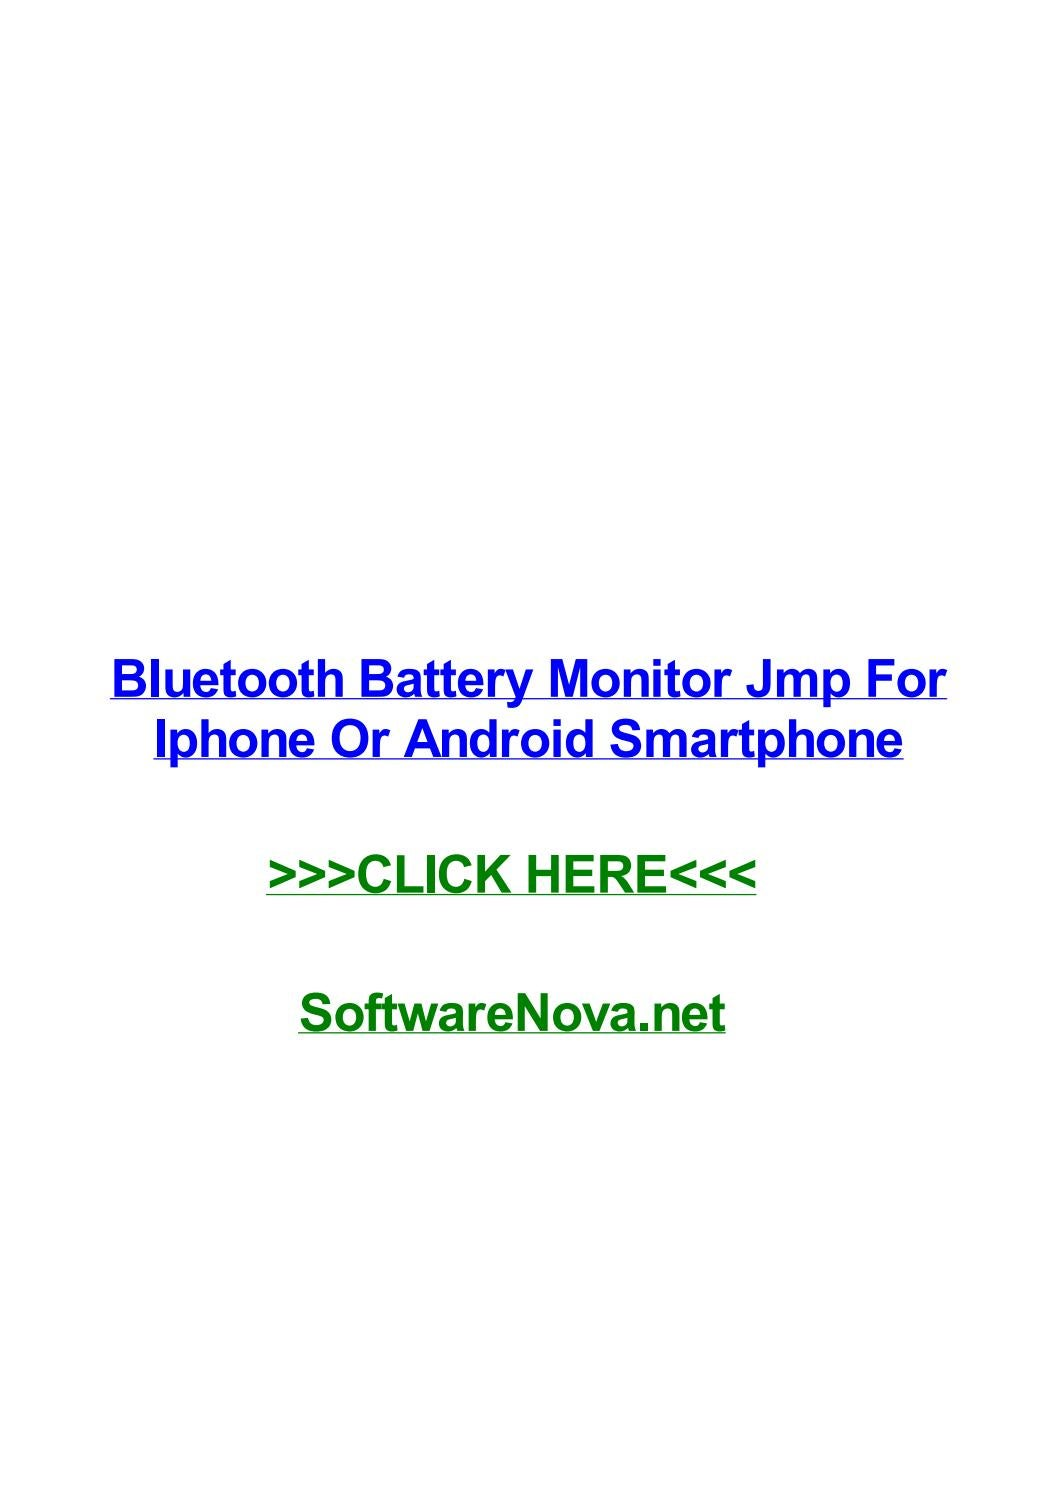 Bluetooth battery monitor jmp for iphone or android